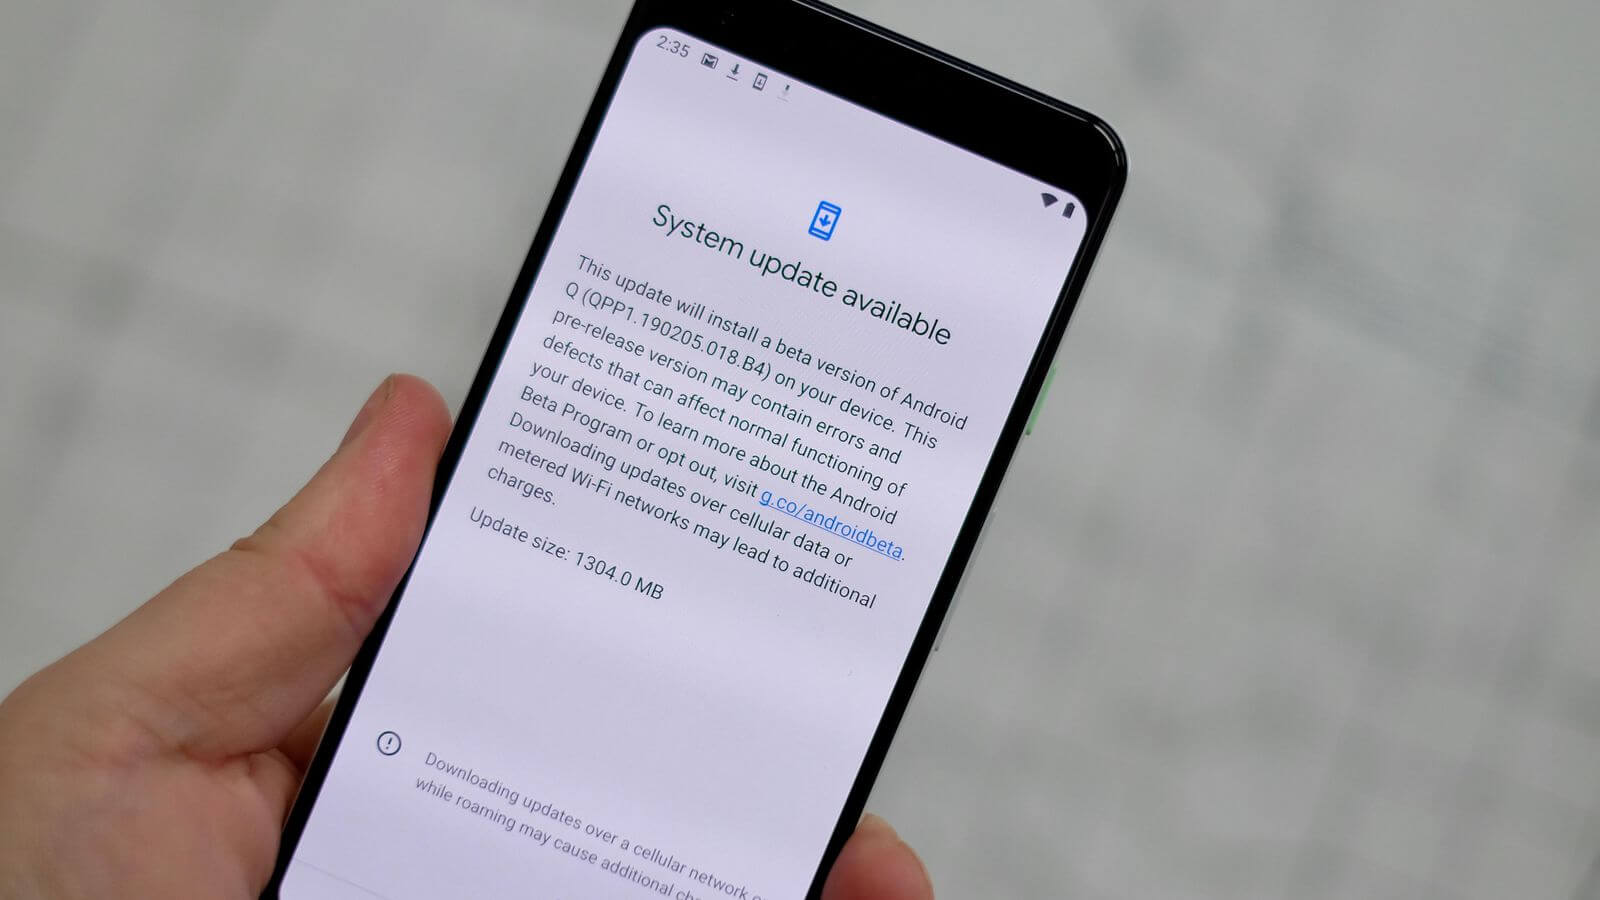 Google temporarily paused its Android Q beta updates after the bootlooping of some Pixel smartphones